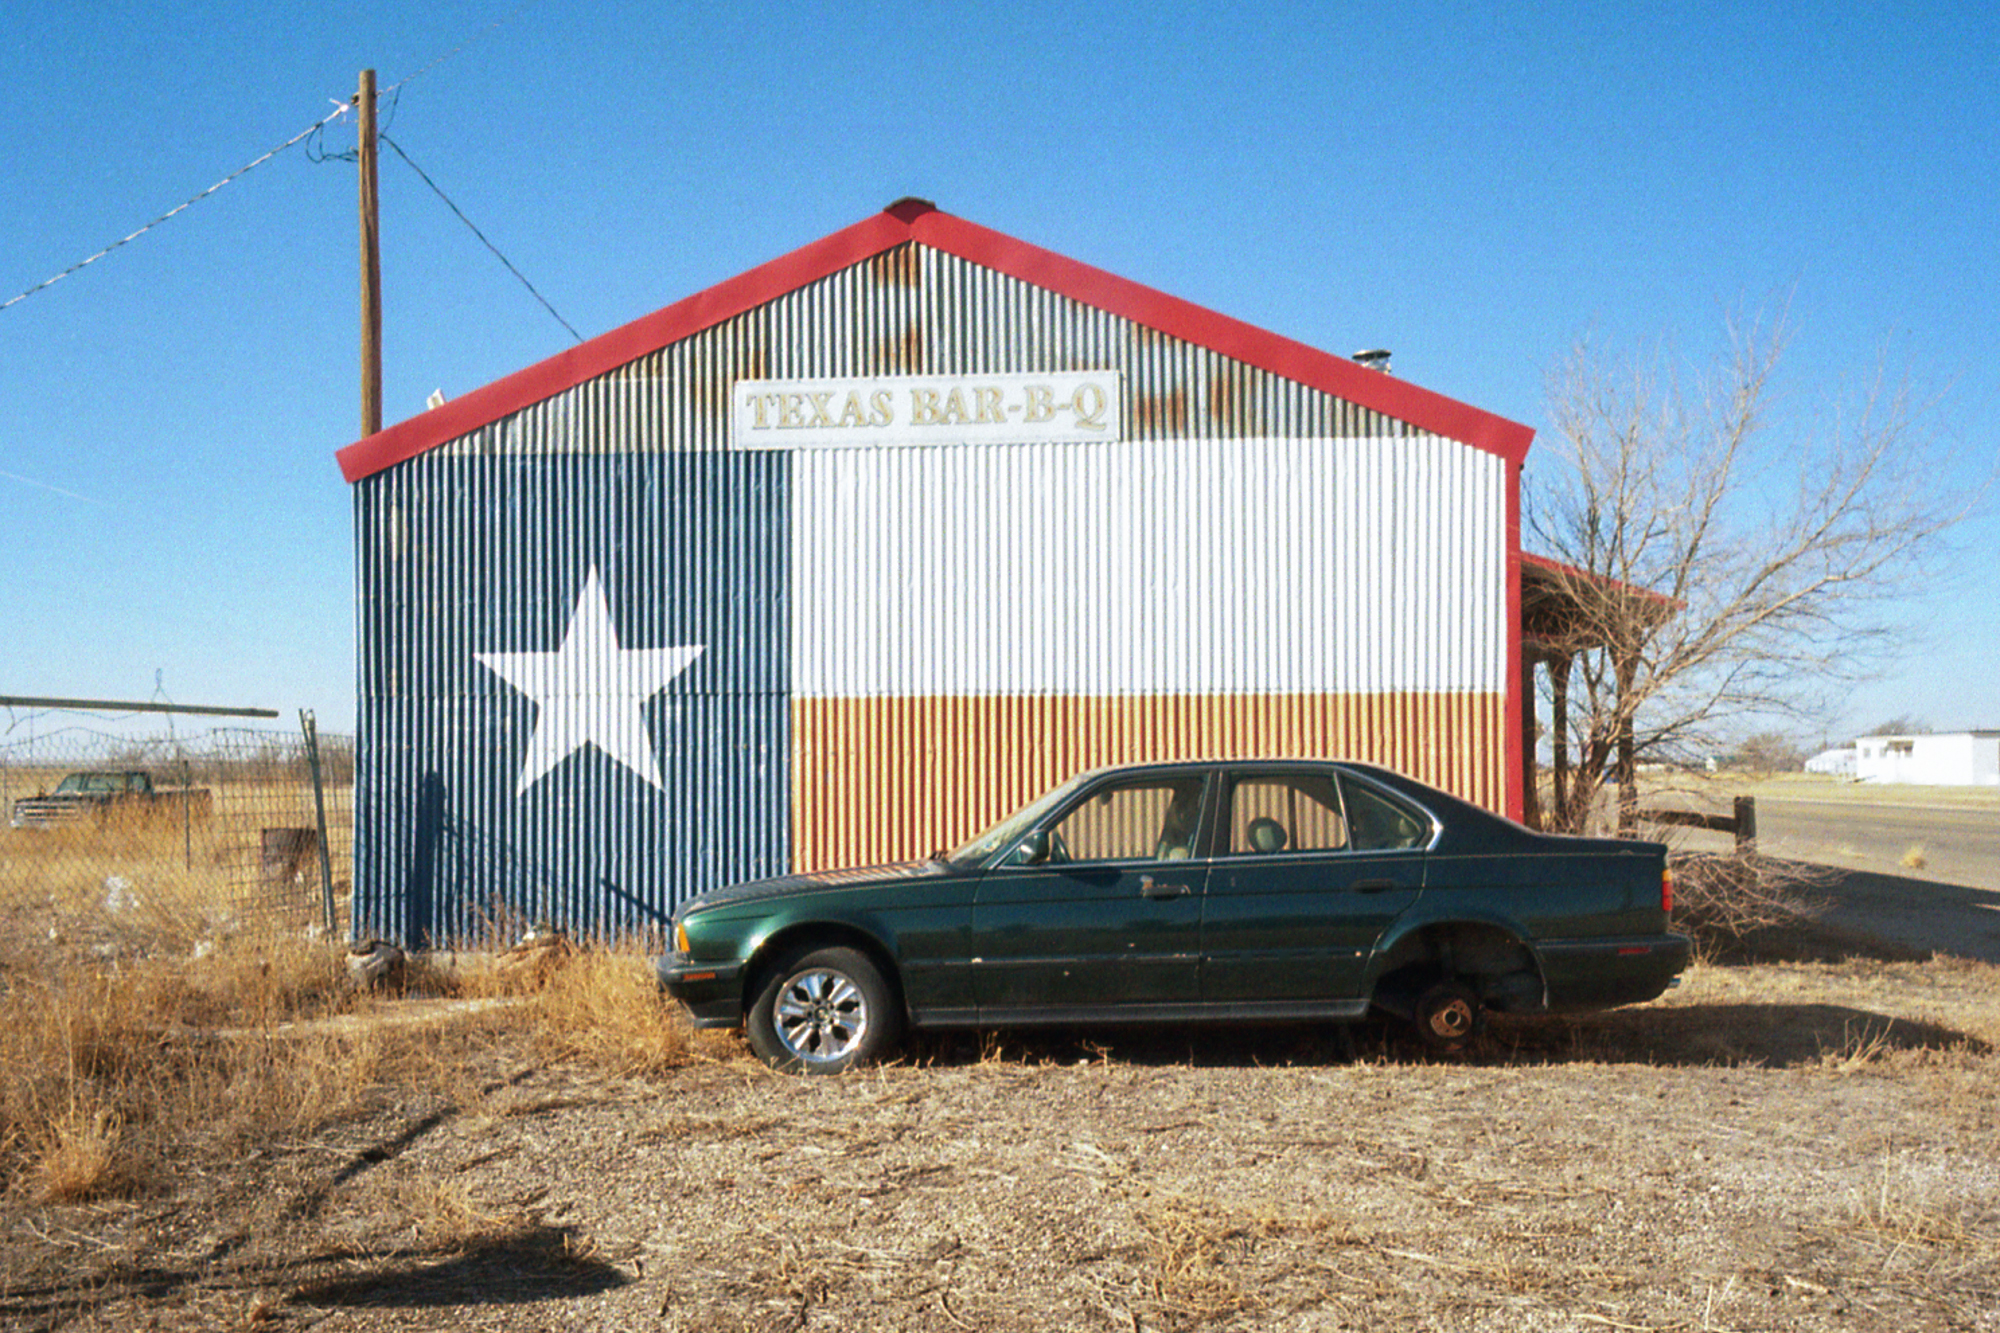 Abandoned car in a close down BBQ joint along the Route 66 in Texas - 2014